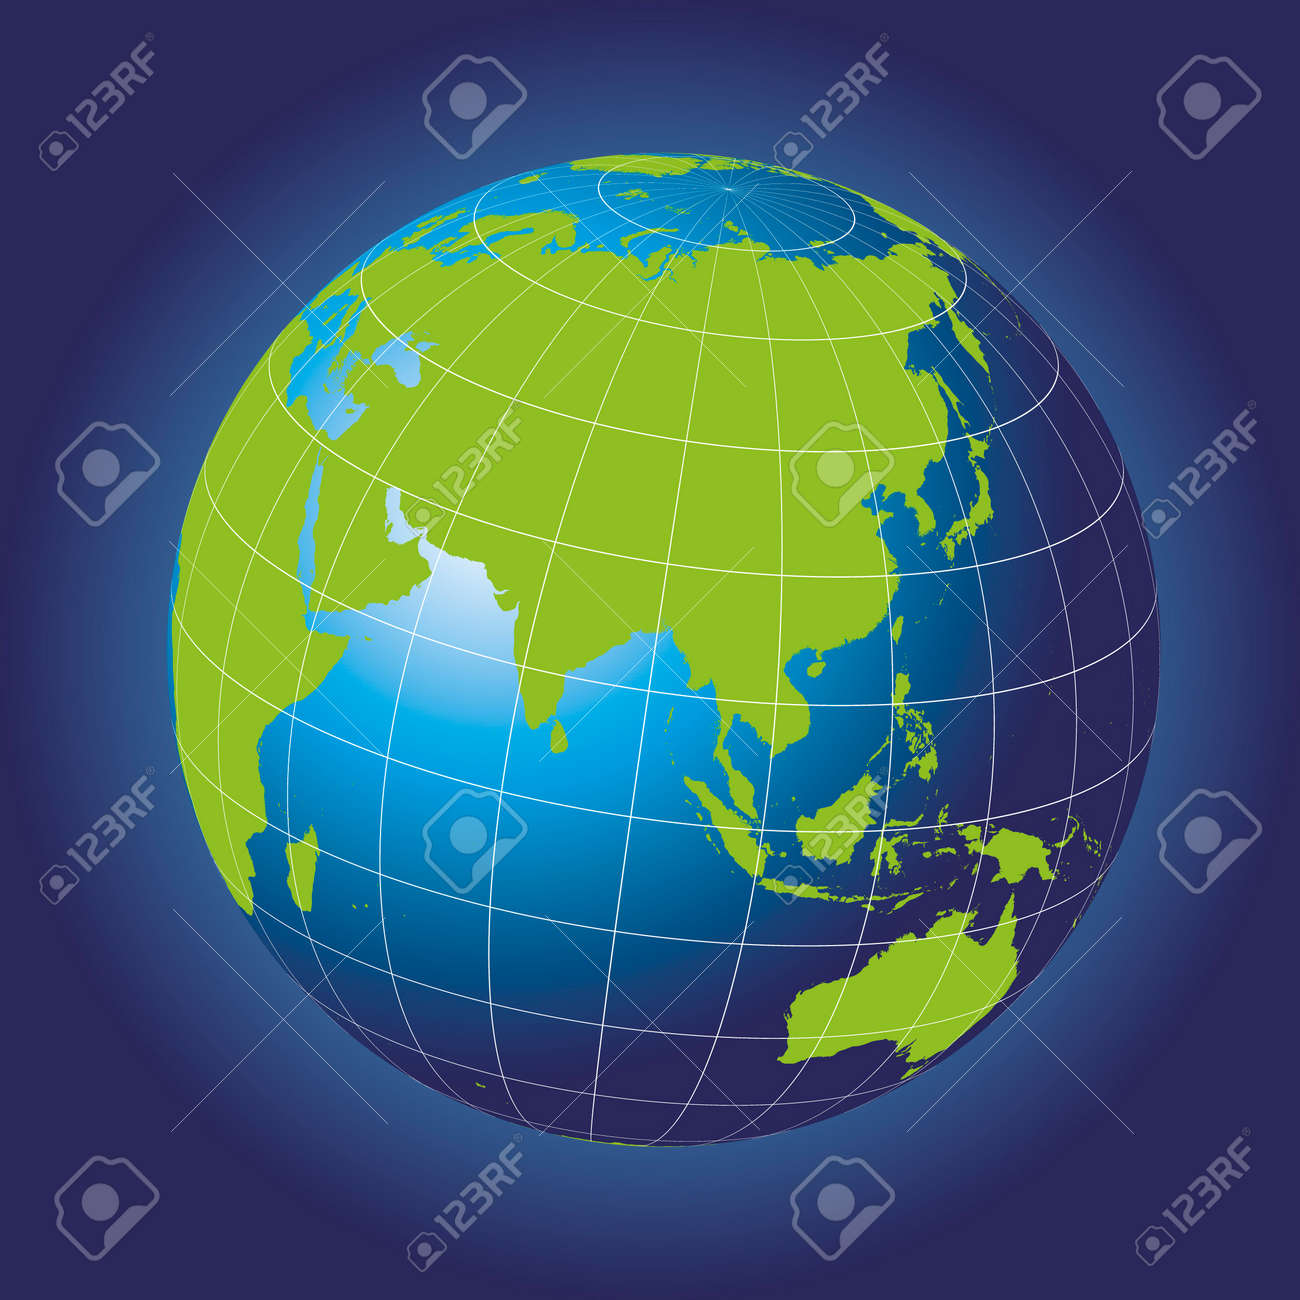 asia map australia russia africa north pole earth globe stock